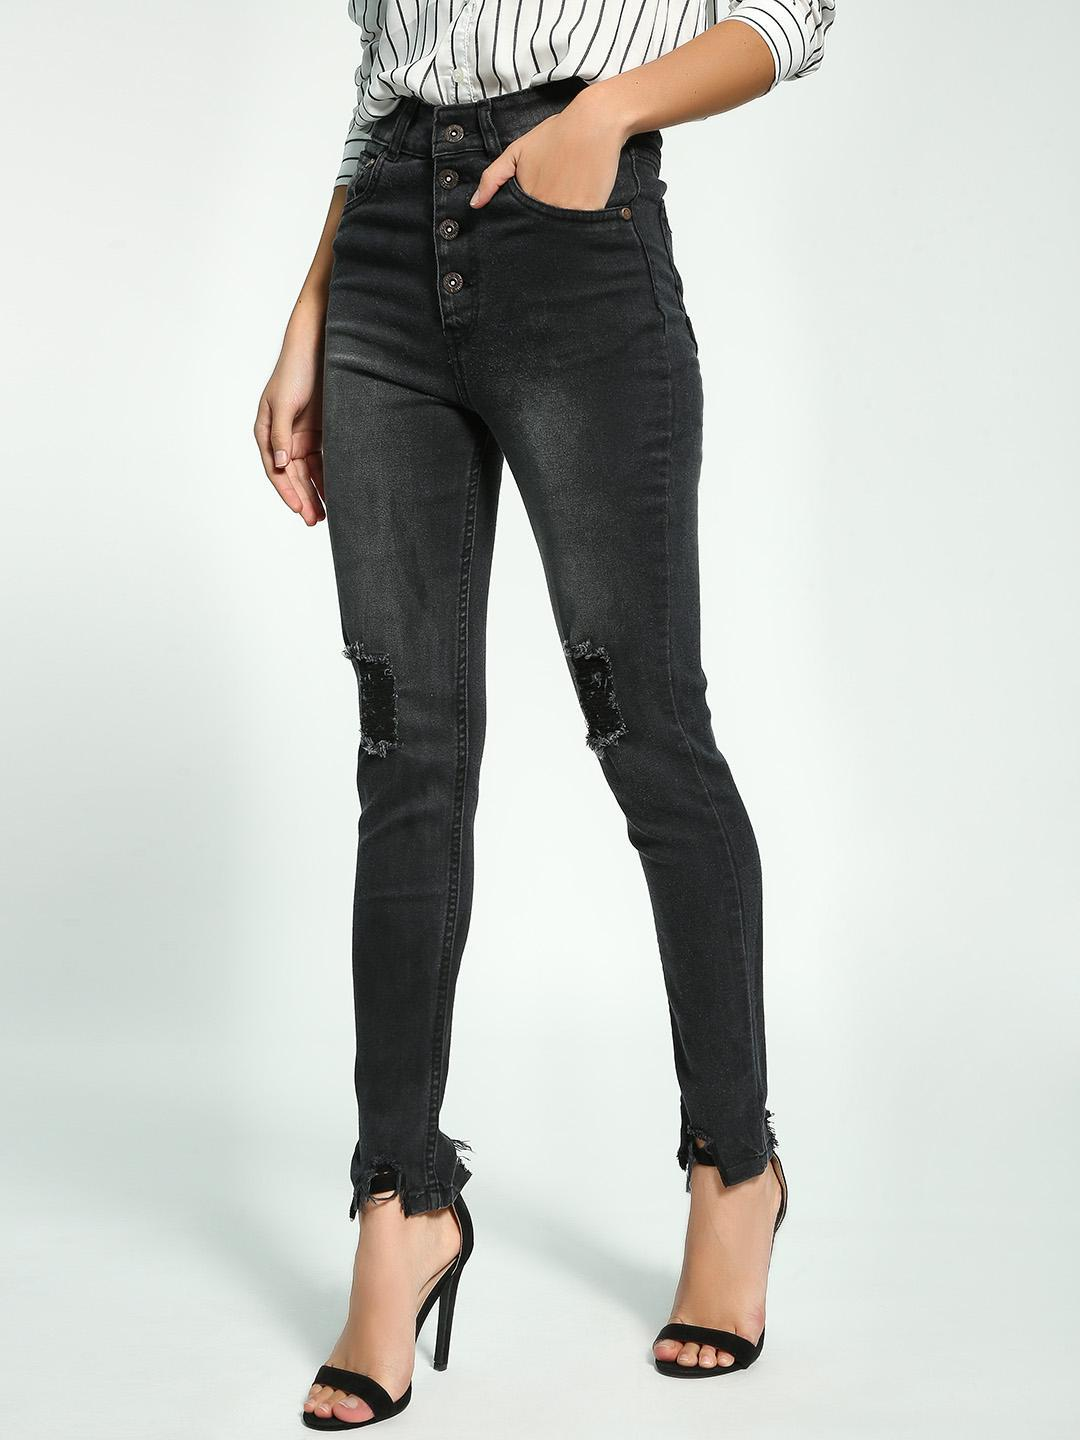 K Denim Black KOOVS Chewed Hem Skinny Jeans 1